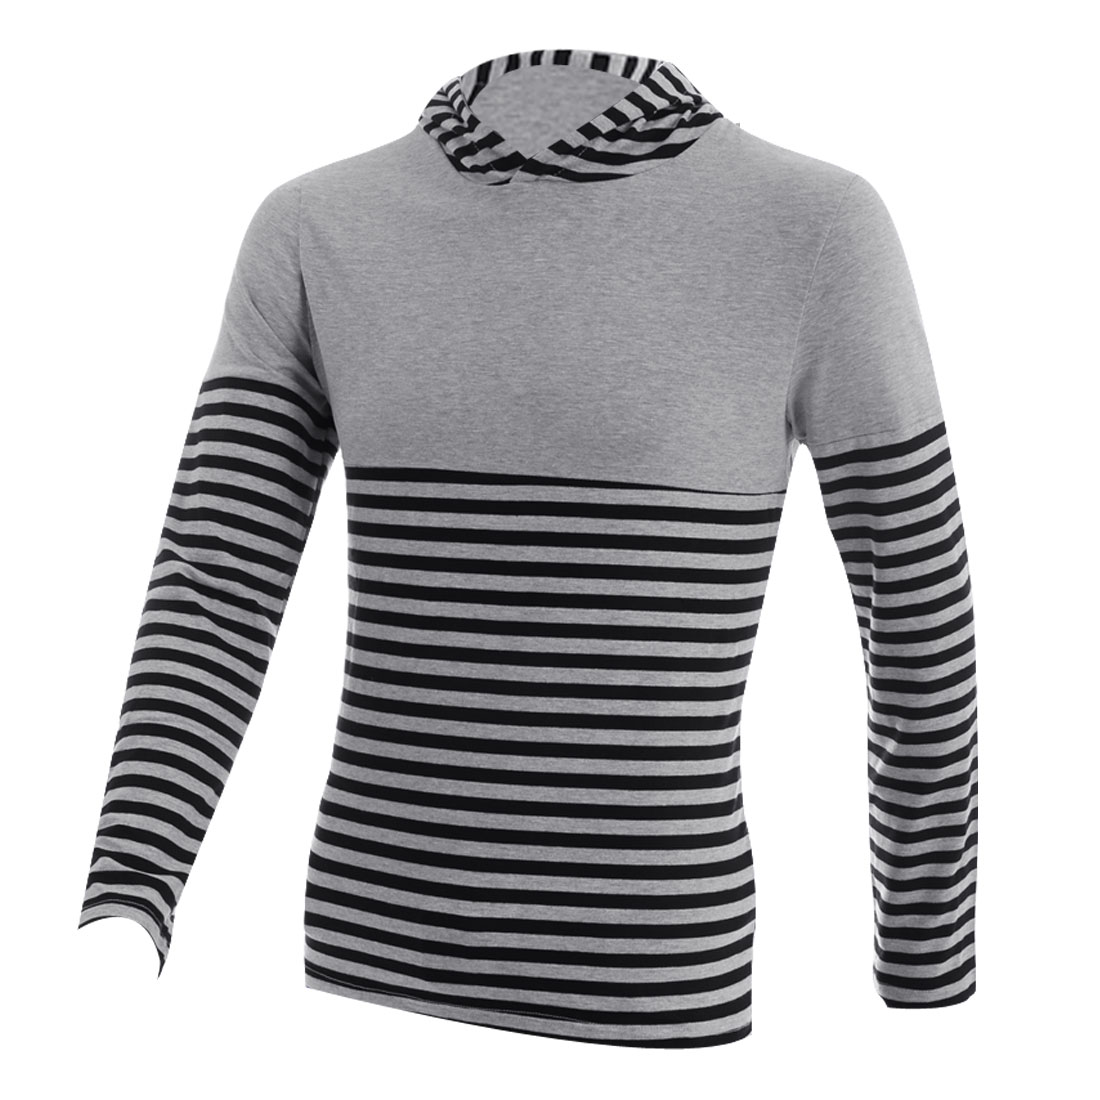 Man Long Sleeved Stripes Pattern Black Light Gray Hooded Top Shirt S